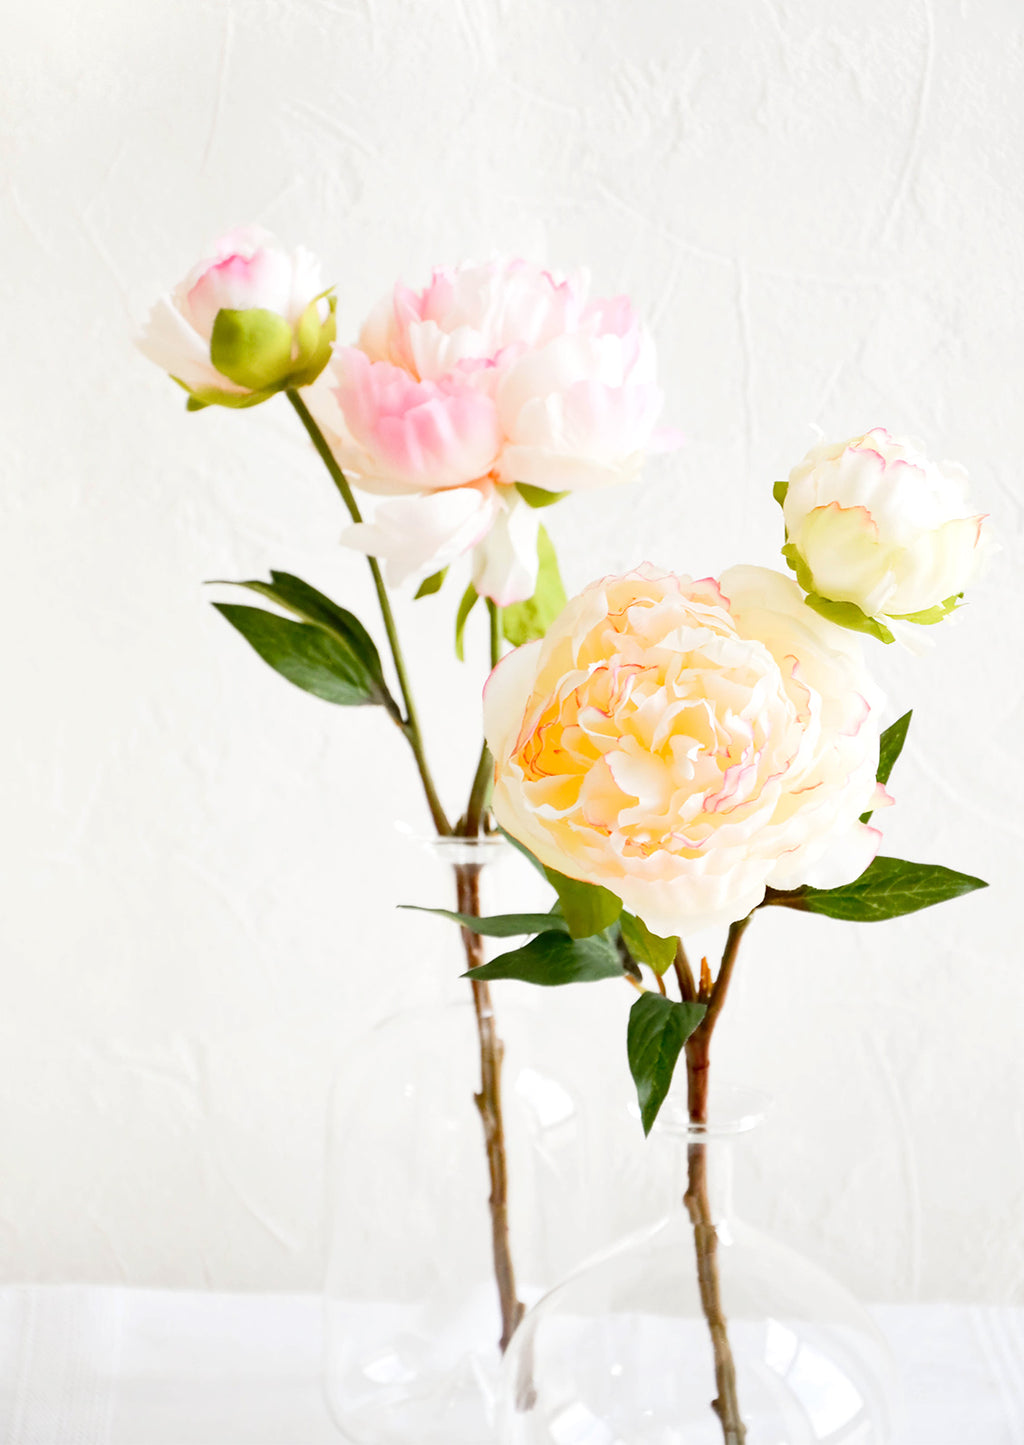 2: Realistic faux peony flowers in white and pink, displayed in glass vases